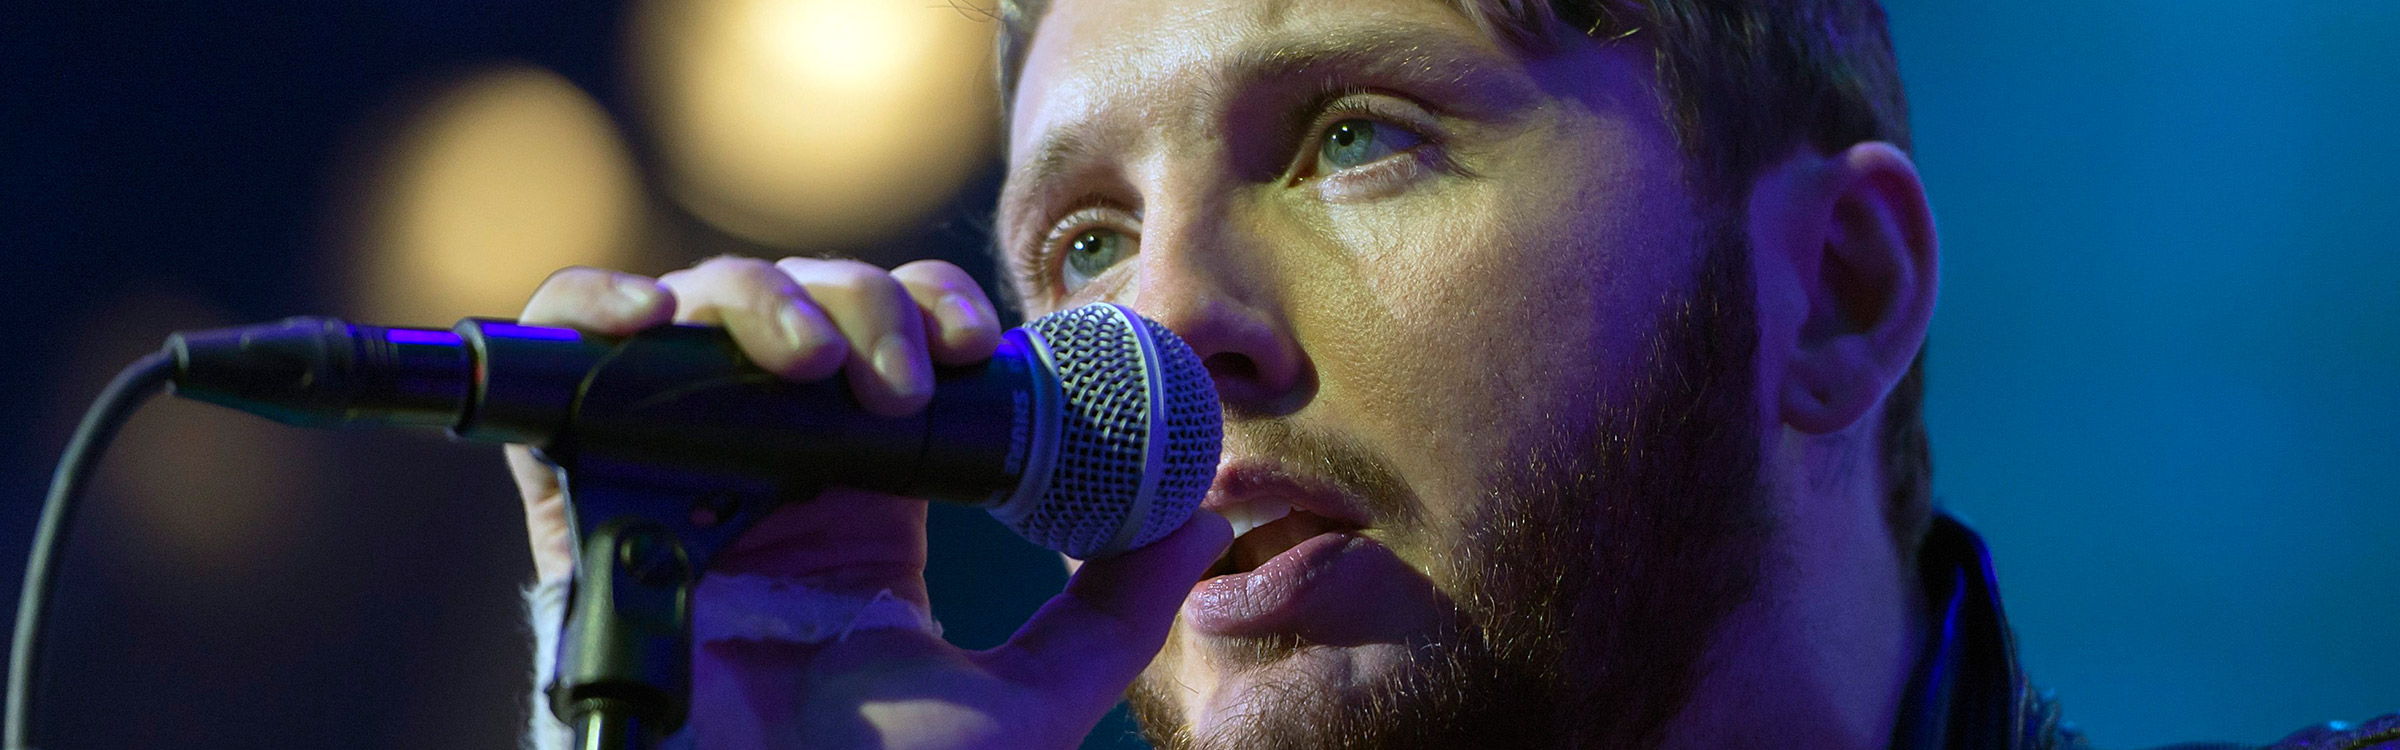 James arthur header